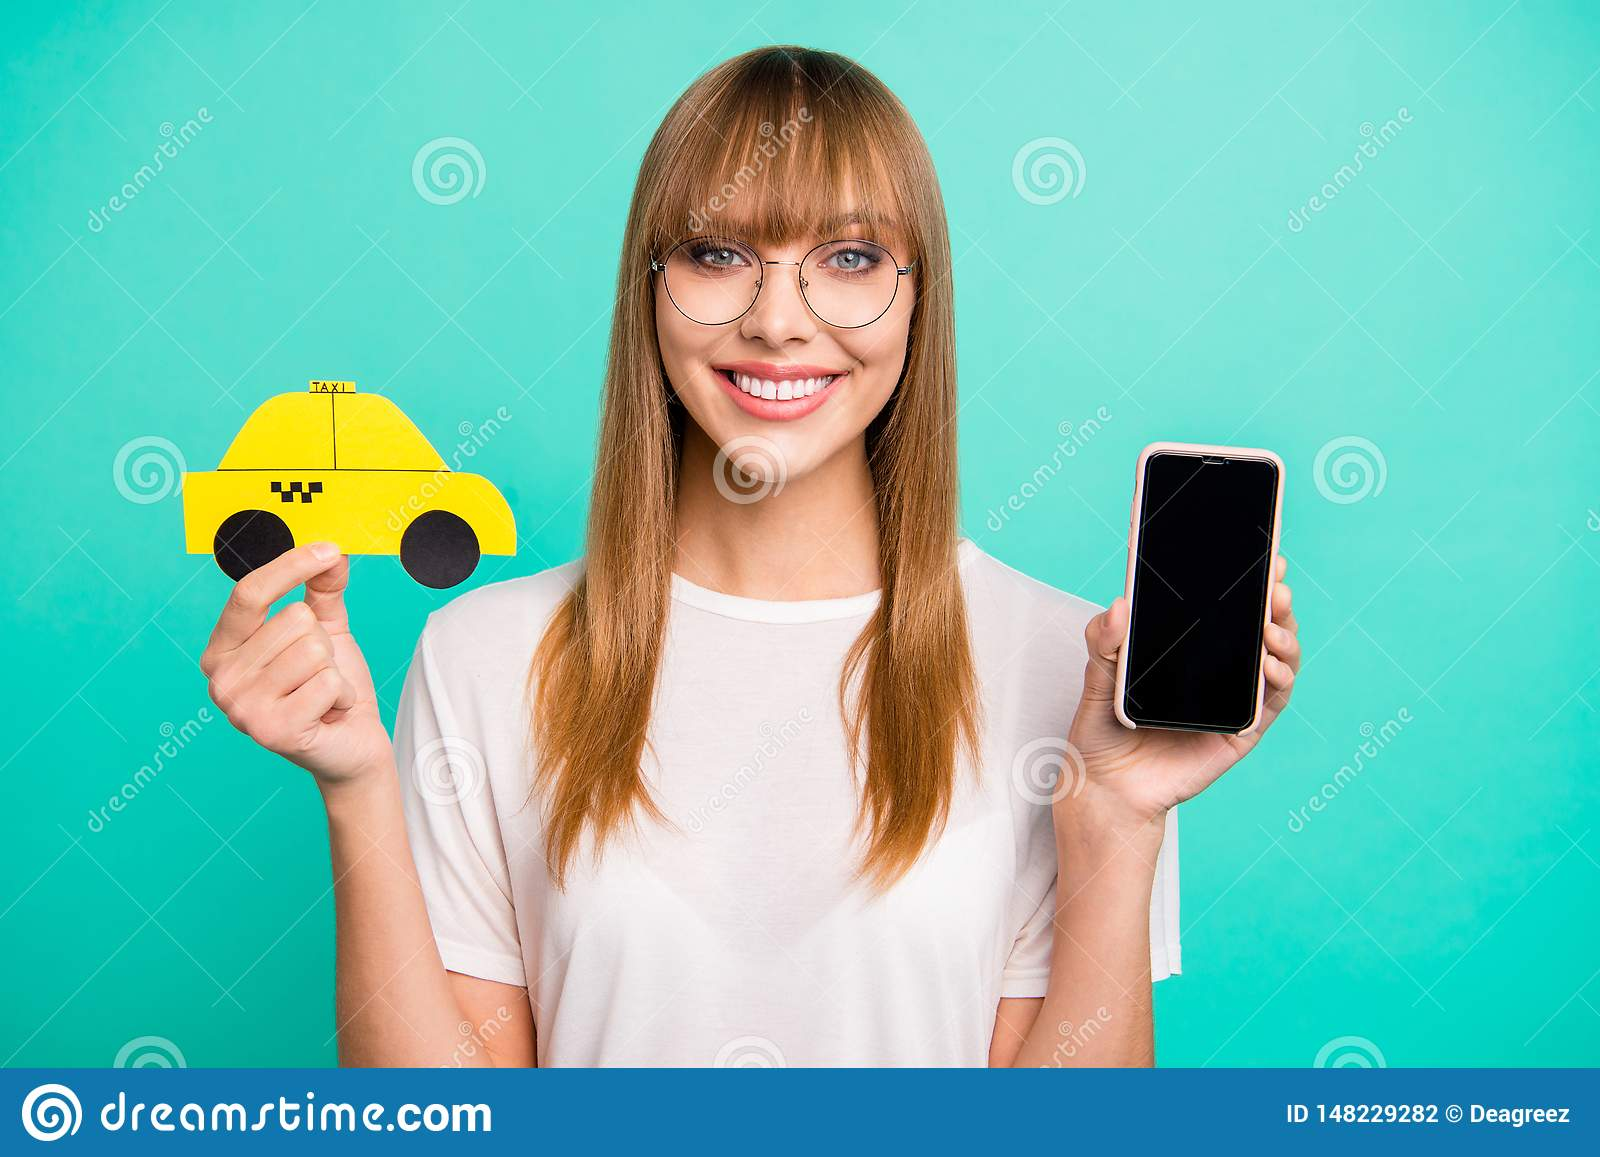 Close up photo beautiful she her lady arm hold telephone paper taxi car advising use user best speed fast service new